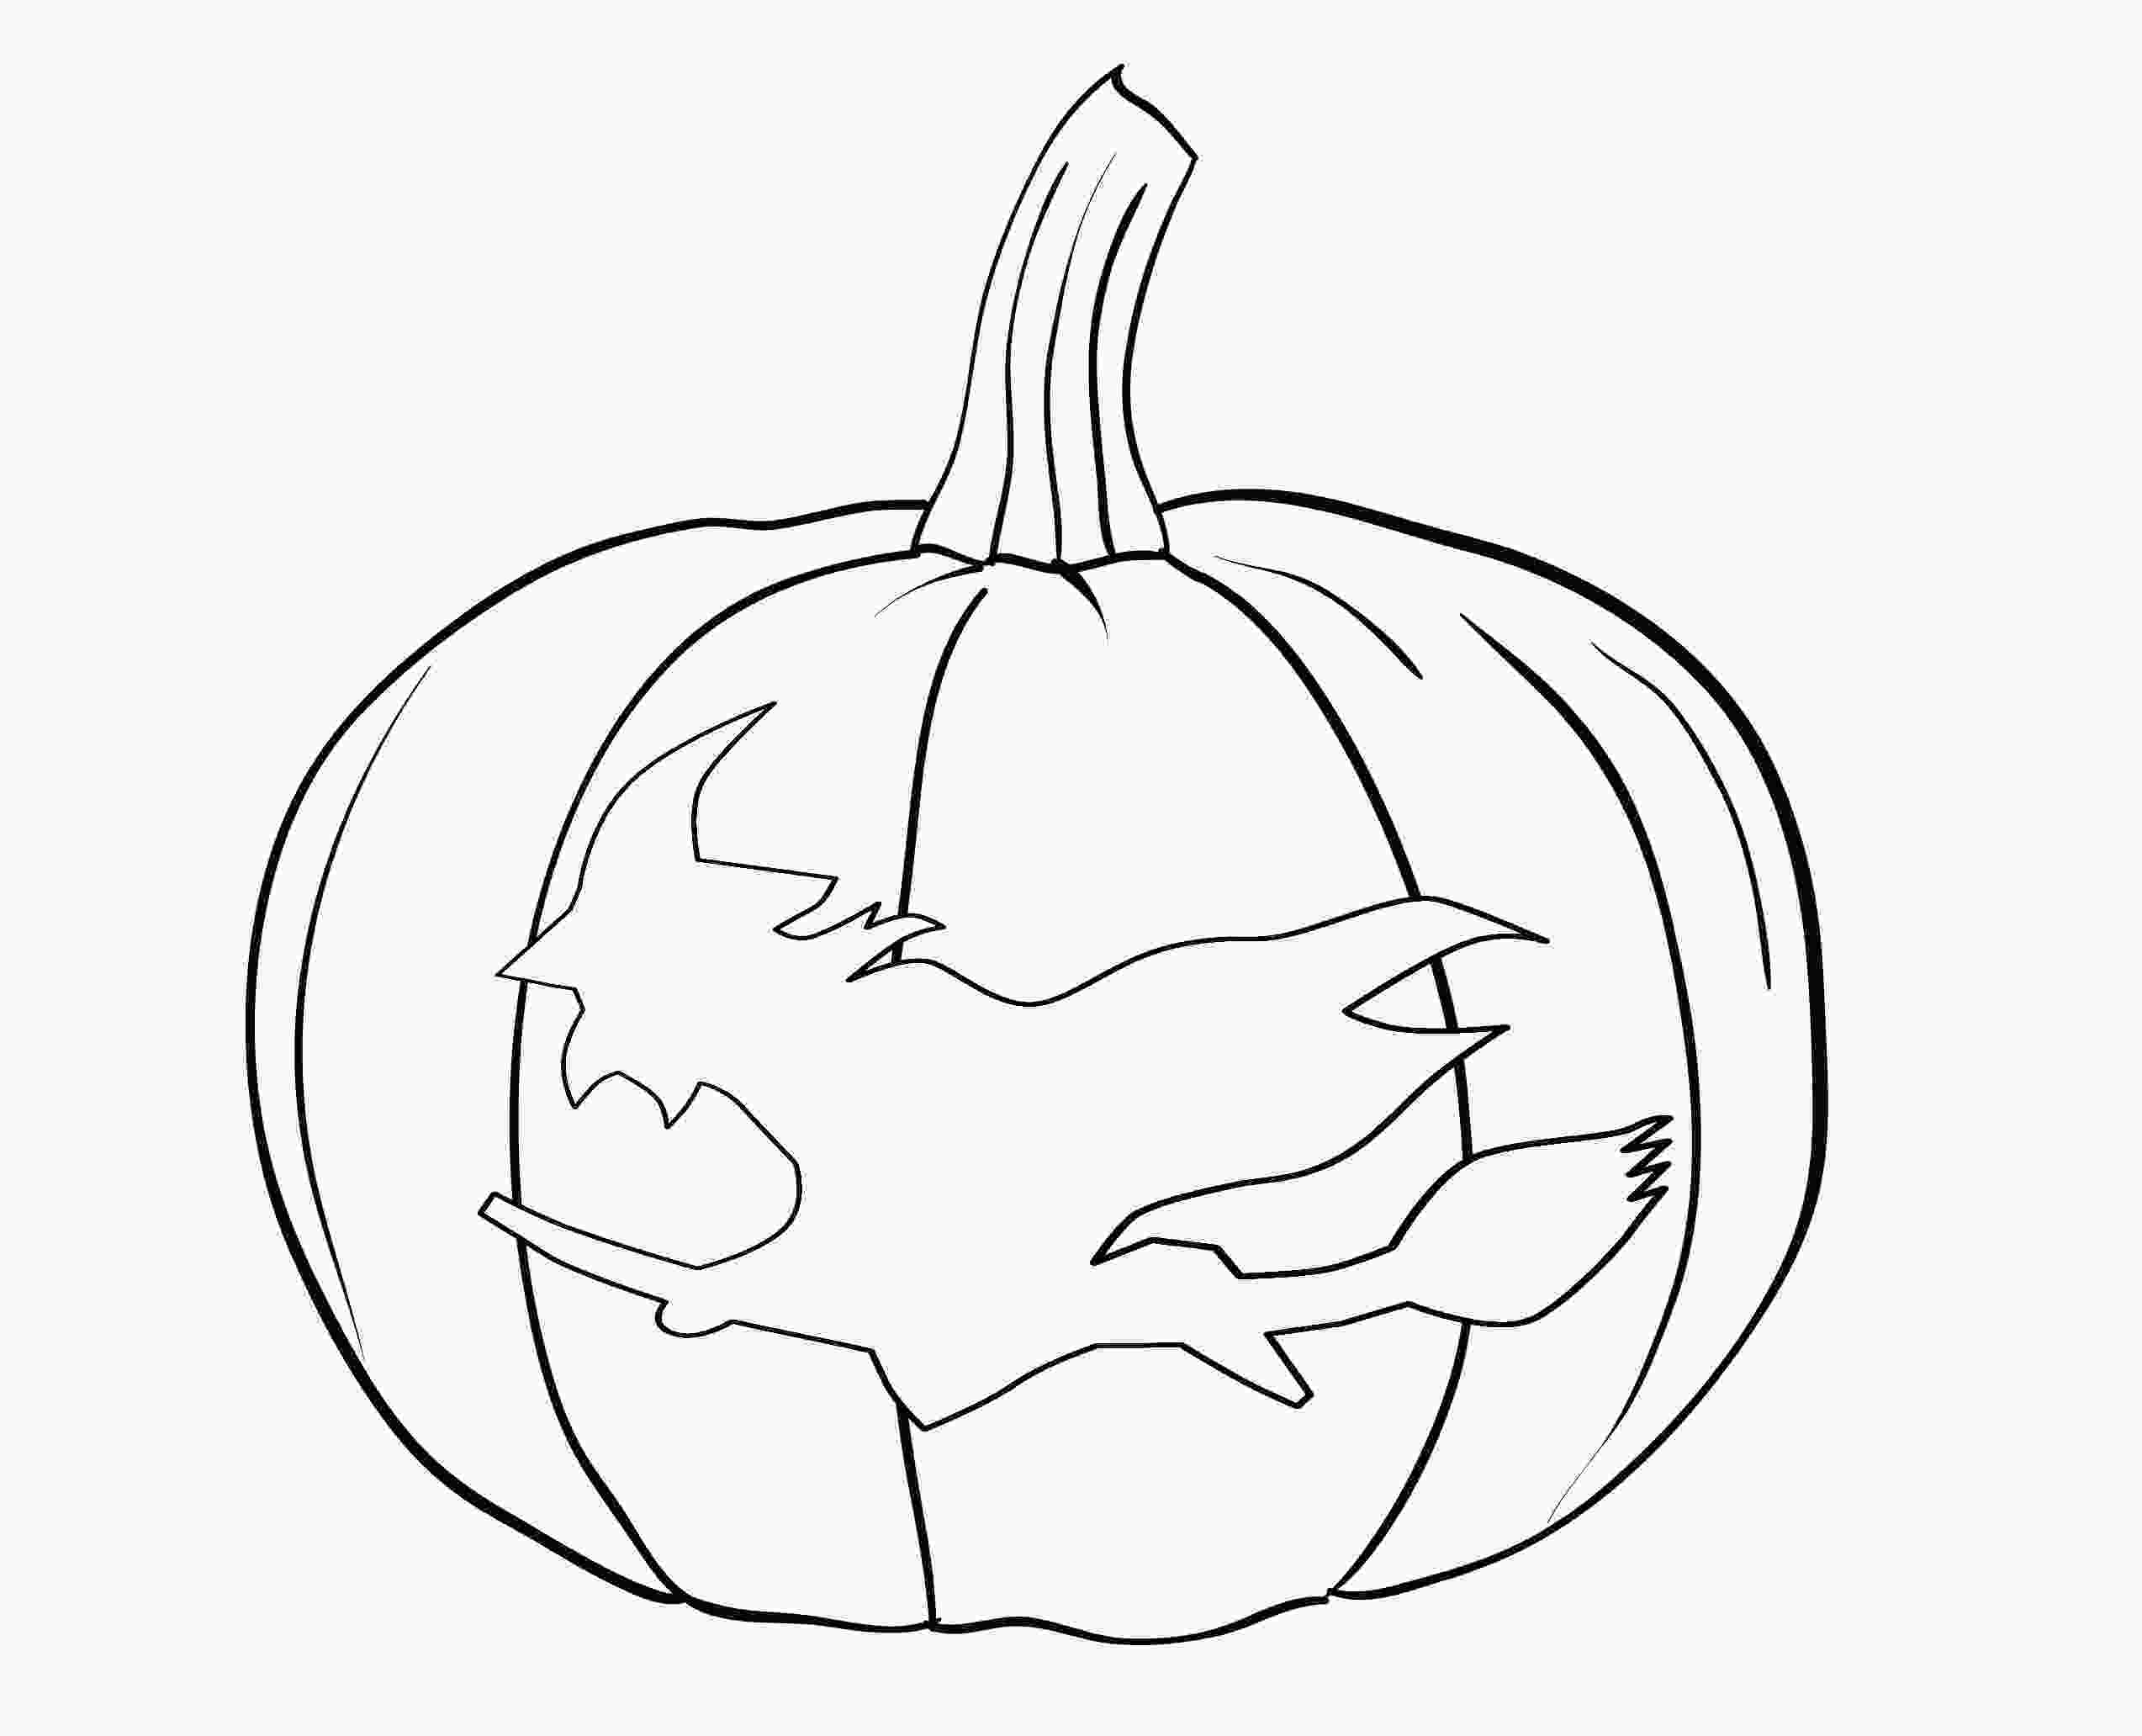 pumpkins to color free printable pumpkin coloring pages for kids 1